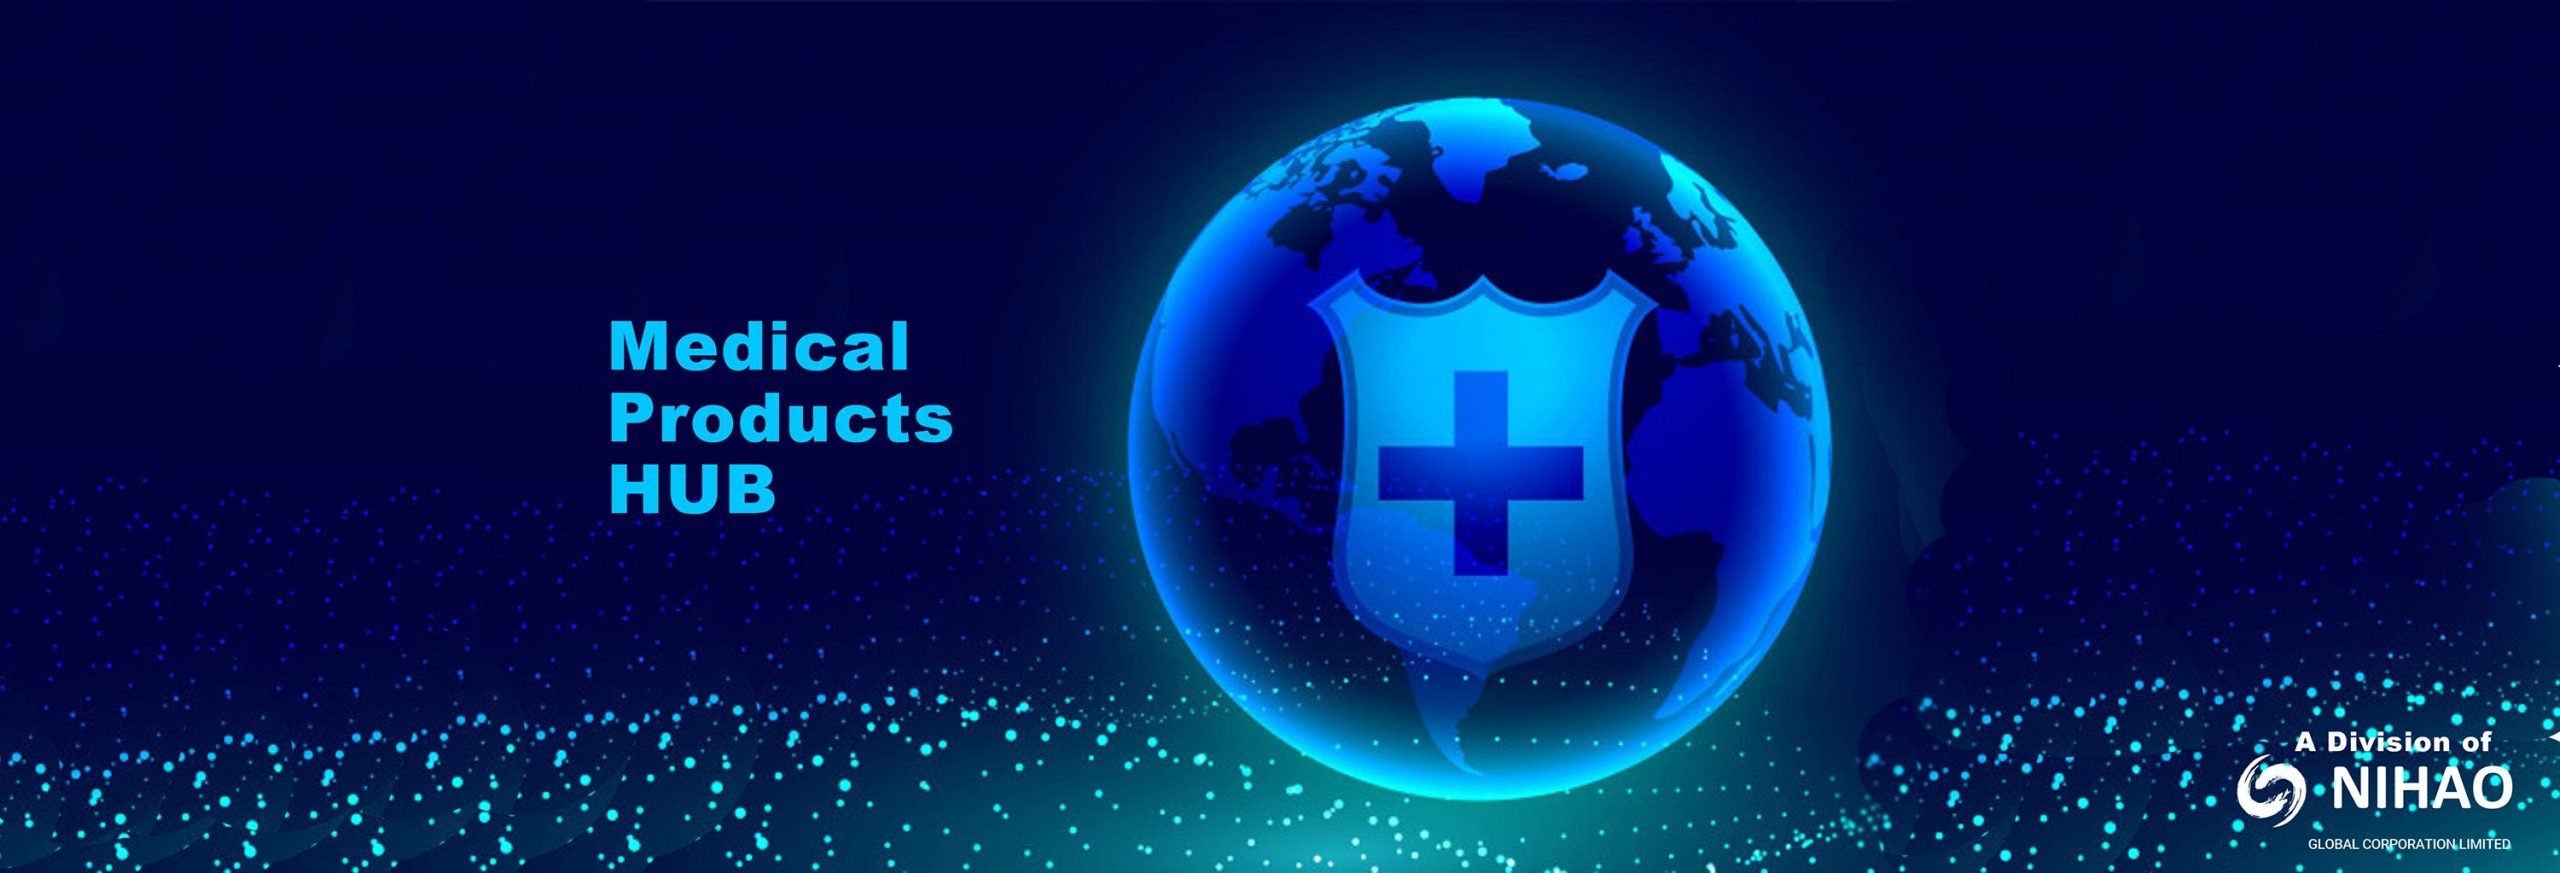 Medical Products HUB is a trustworthy bulk ordering market place for the purchase of medical products